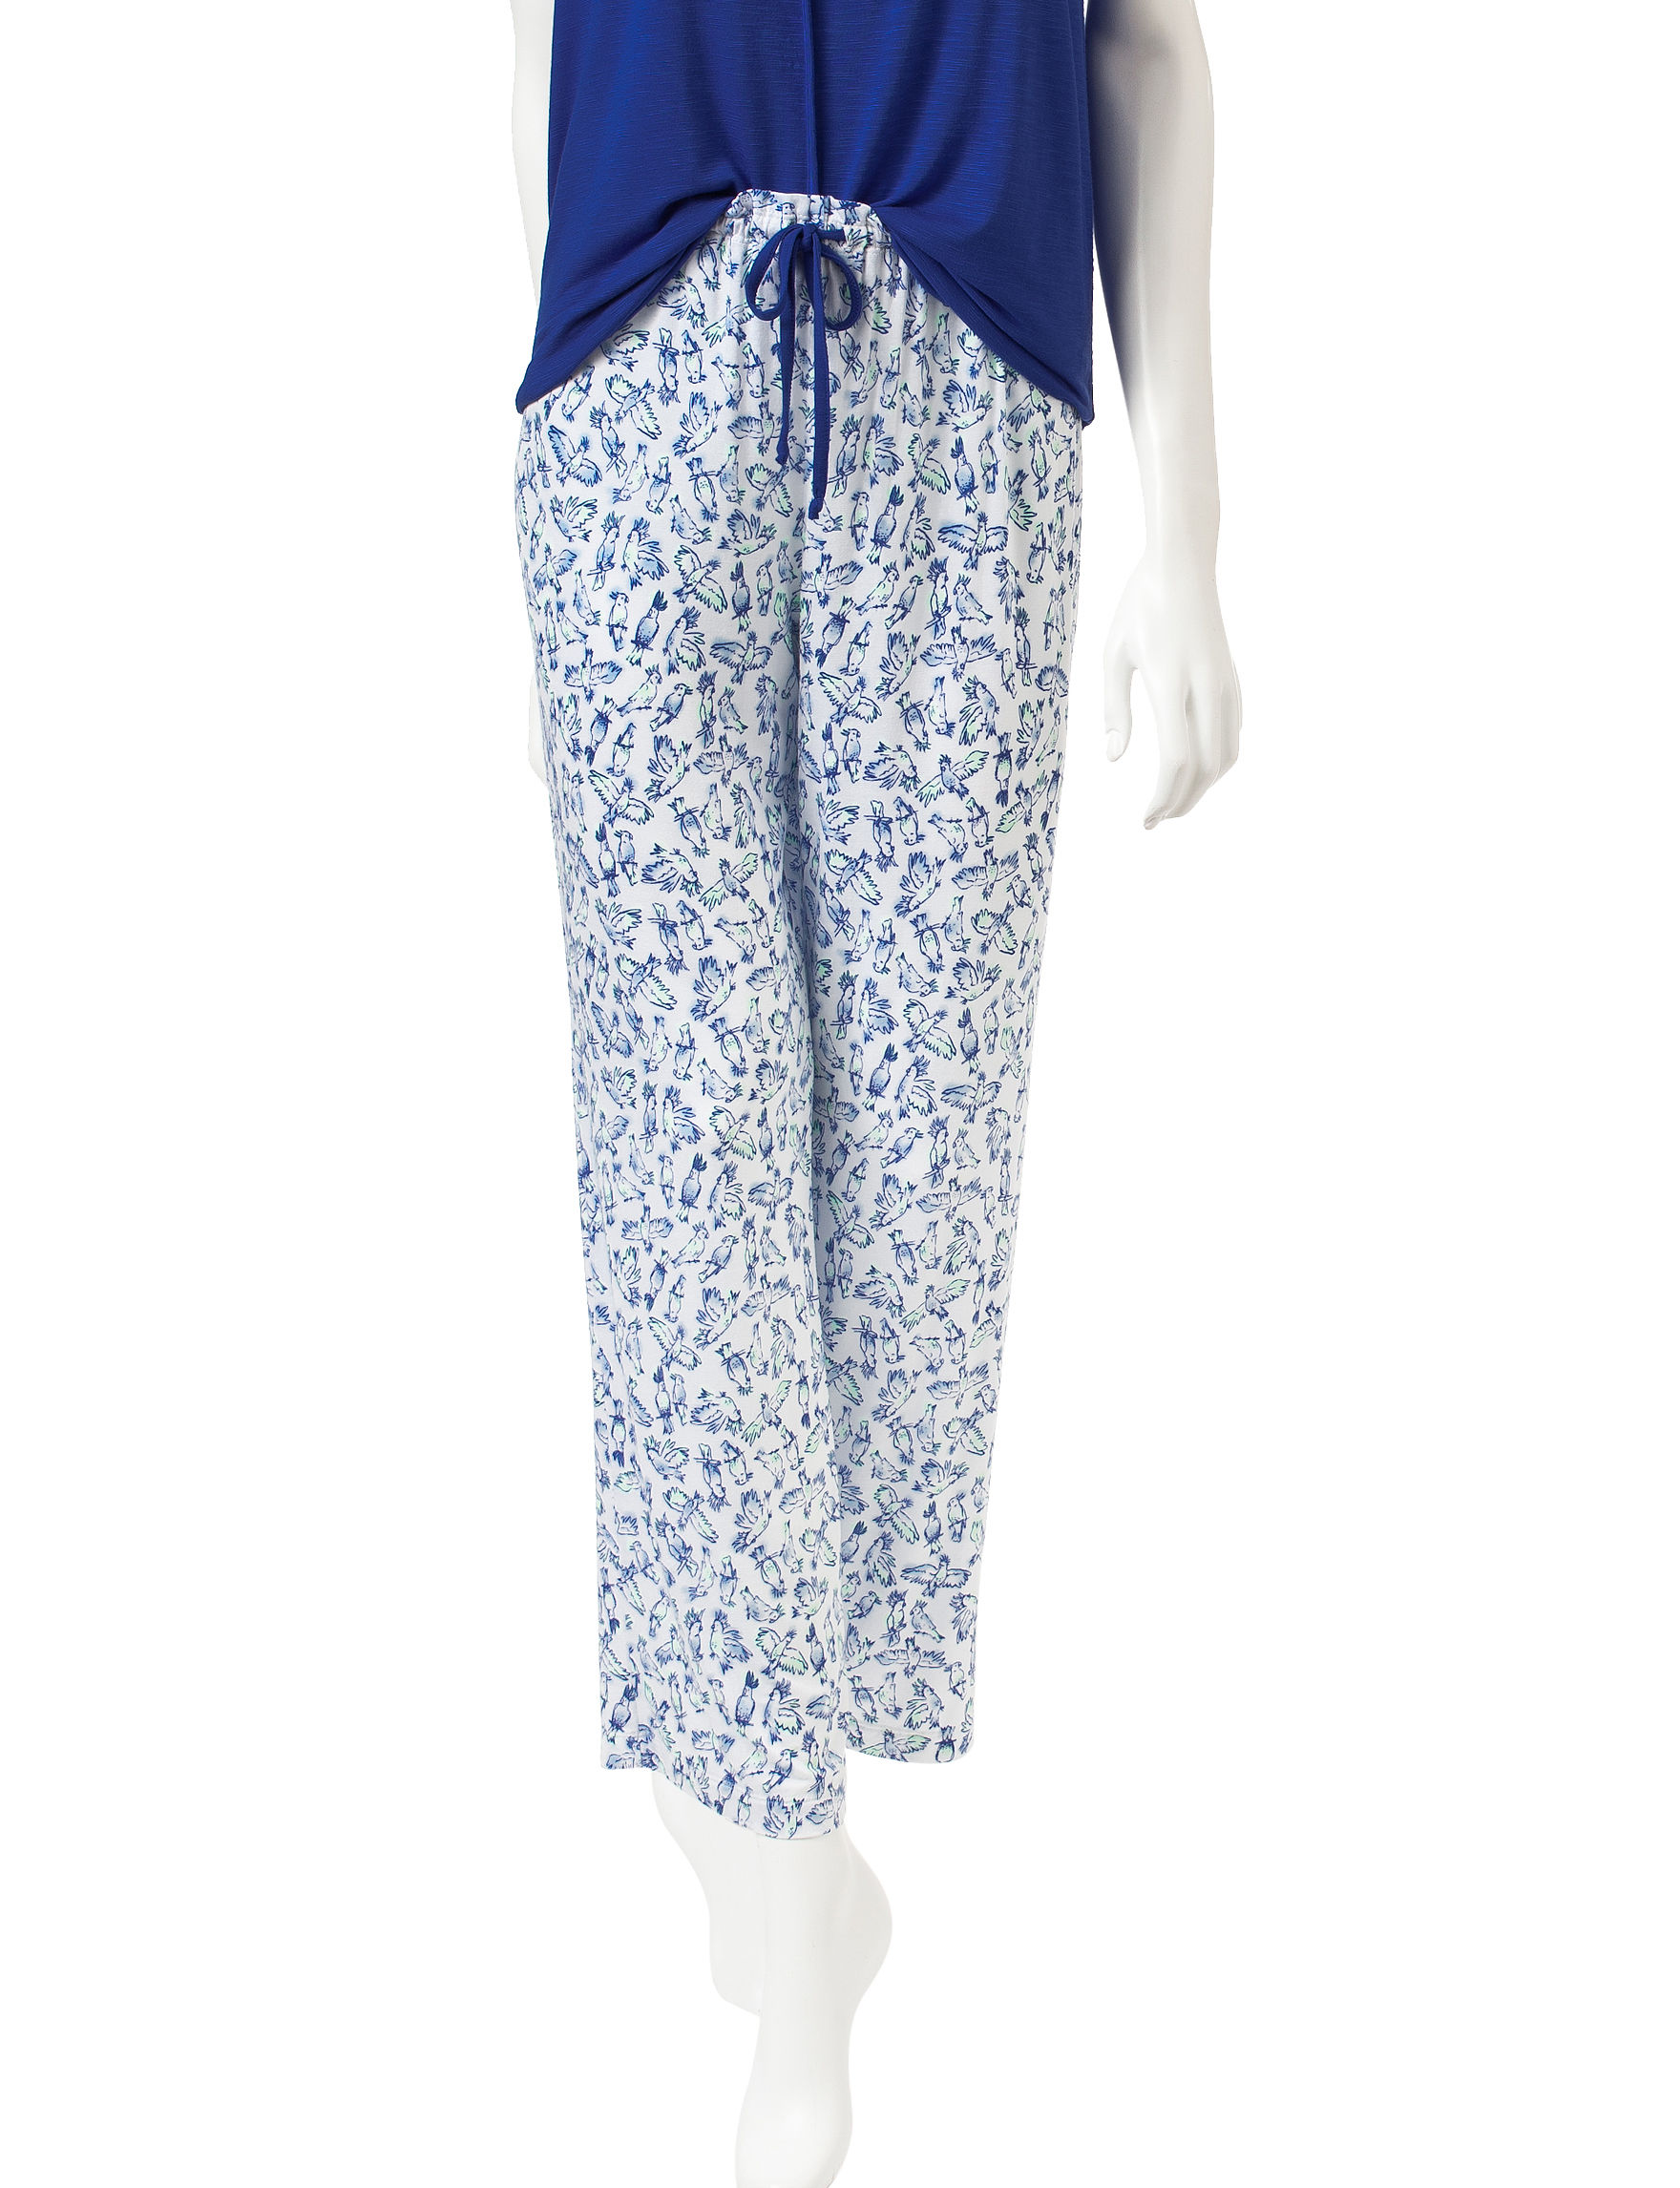 Laura Ashley Blue / White Pajama Bottoms